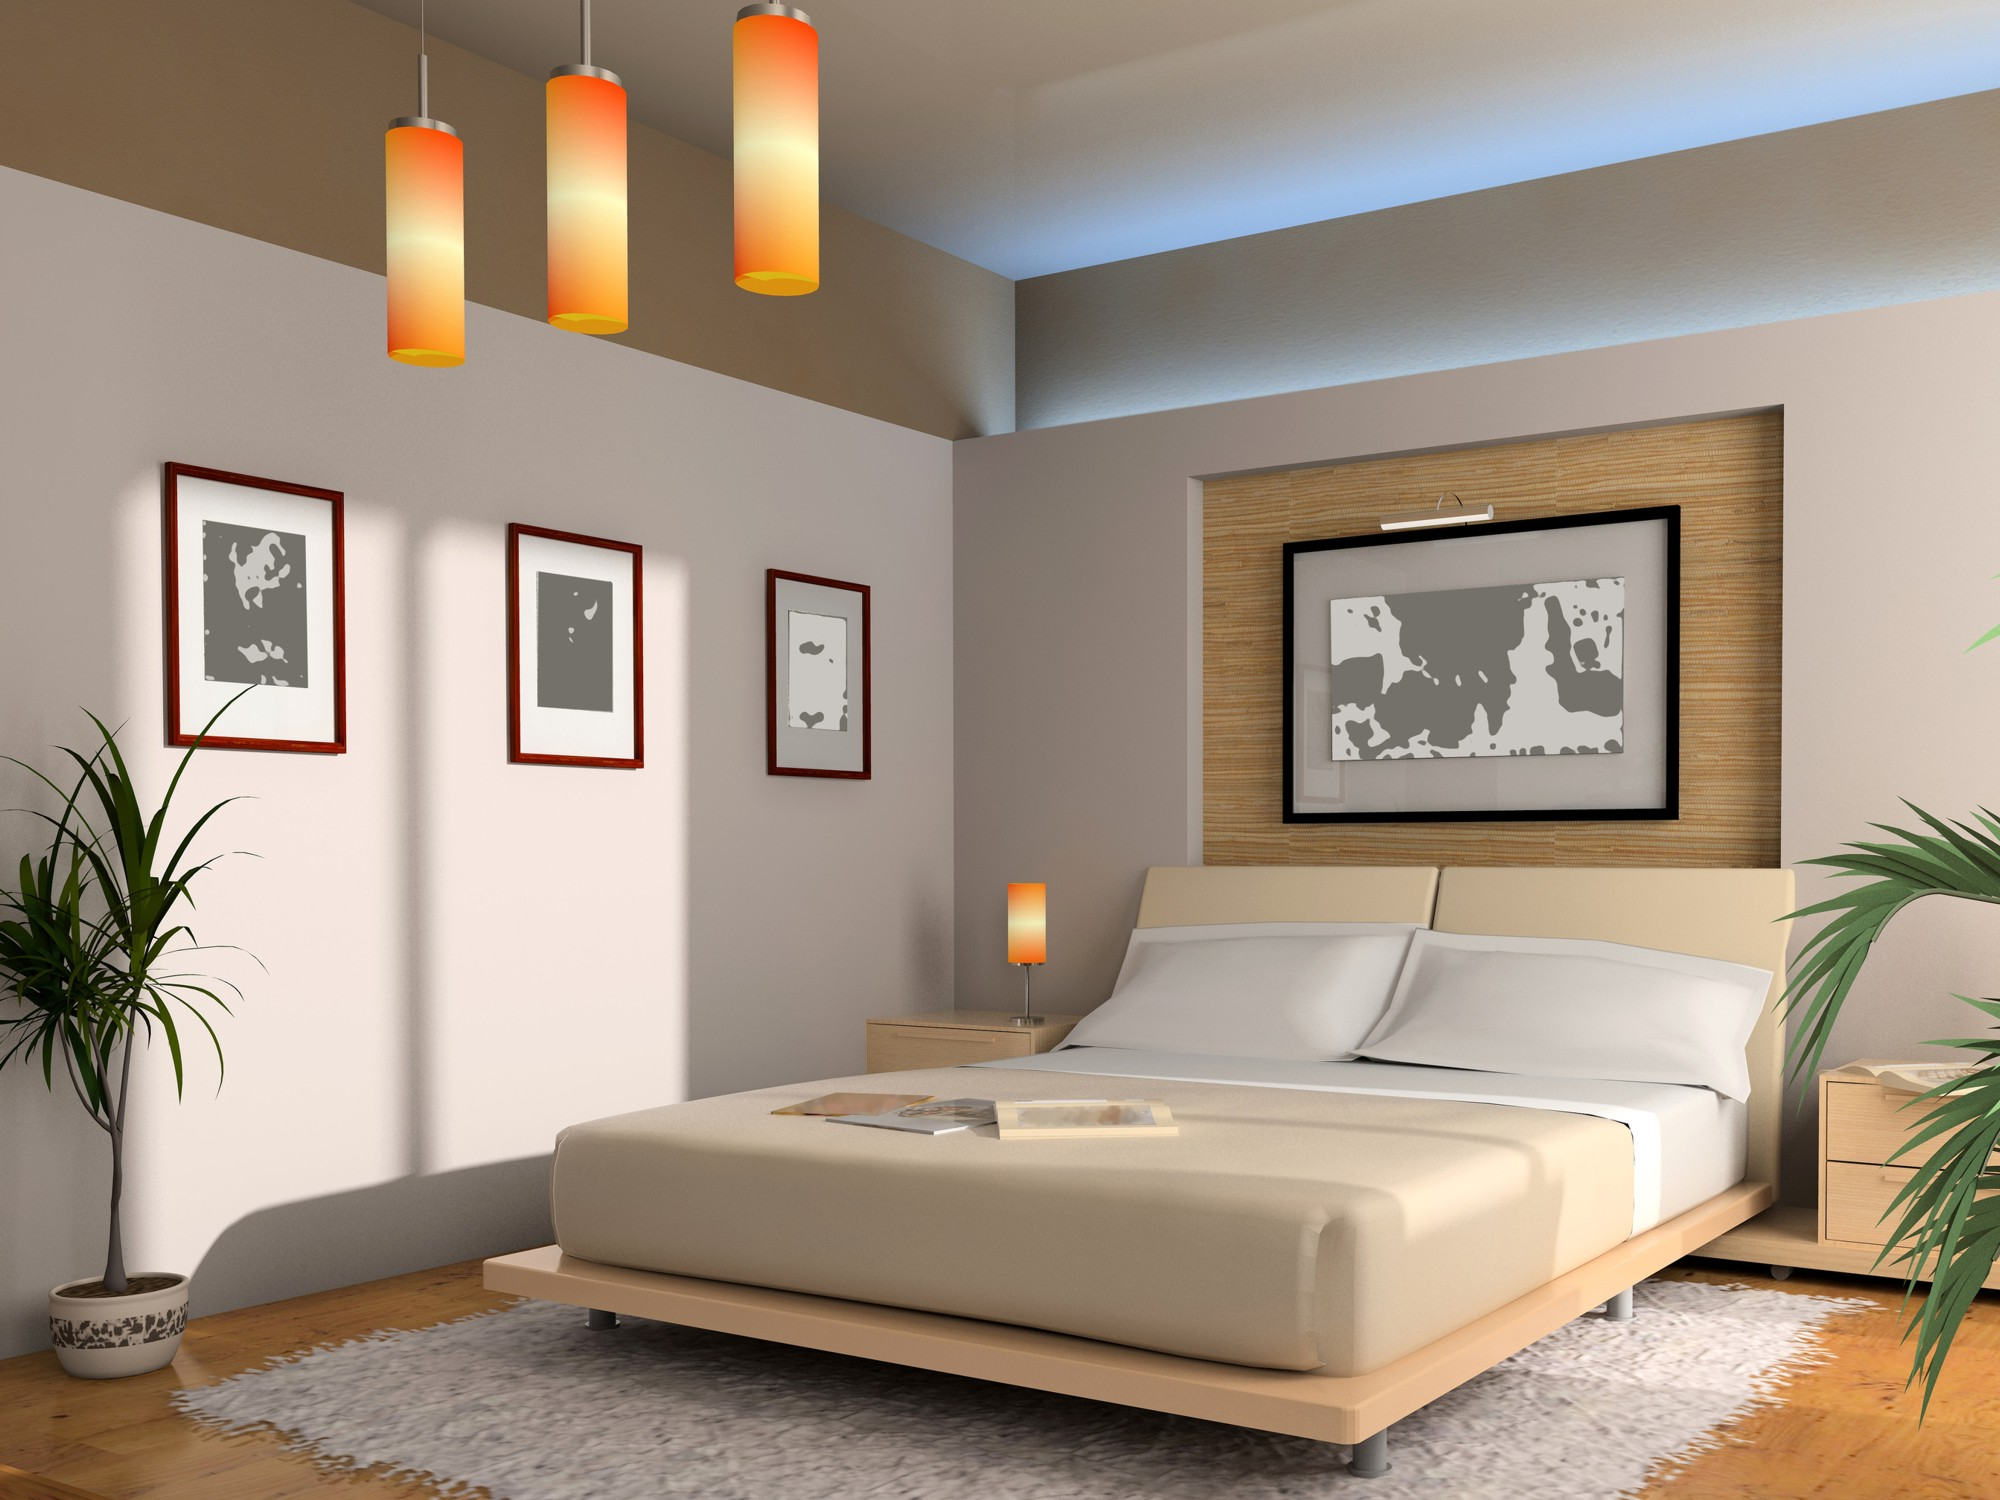 Modern interior of a bedroom with illumination dekorstore for Modern feng shui